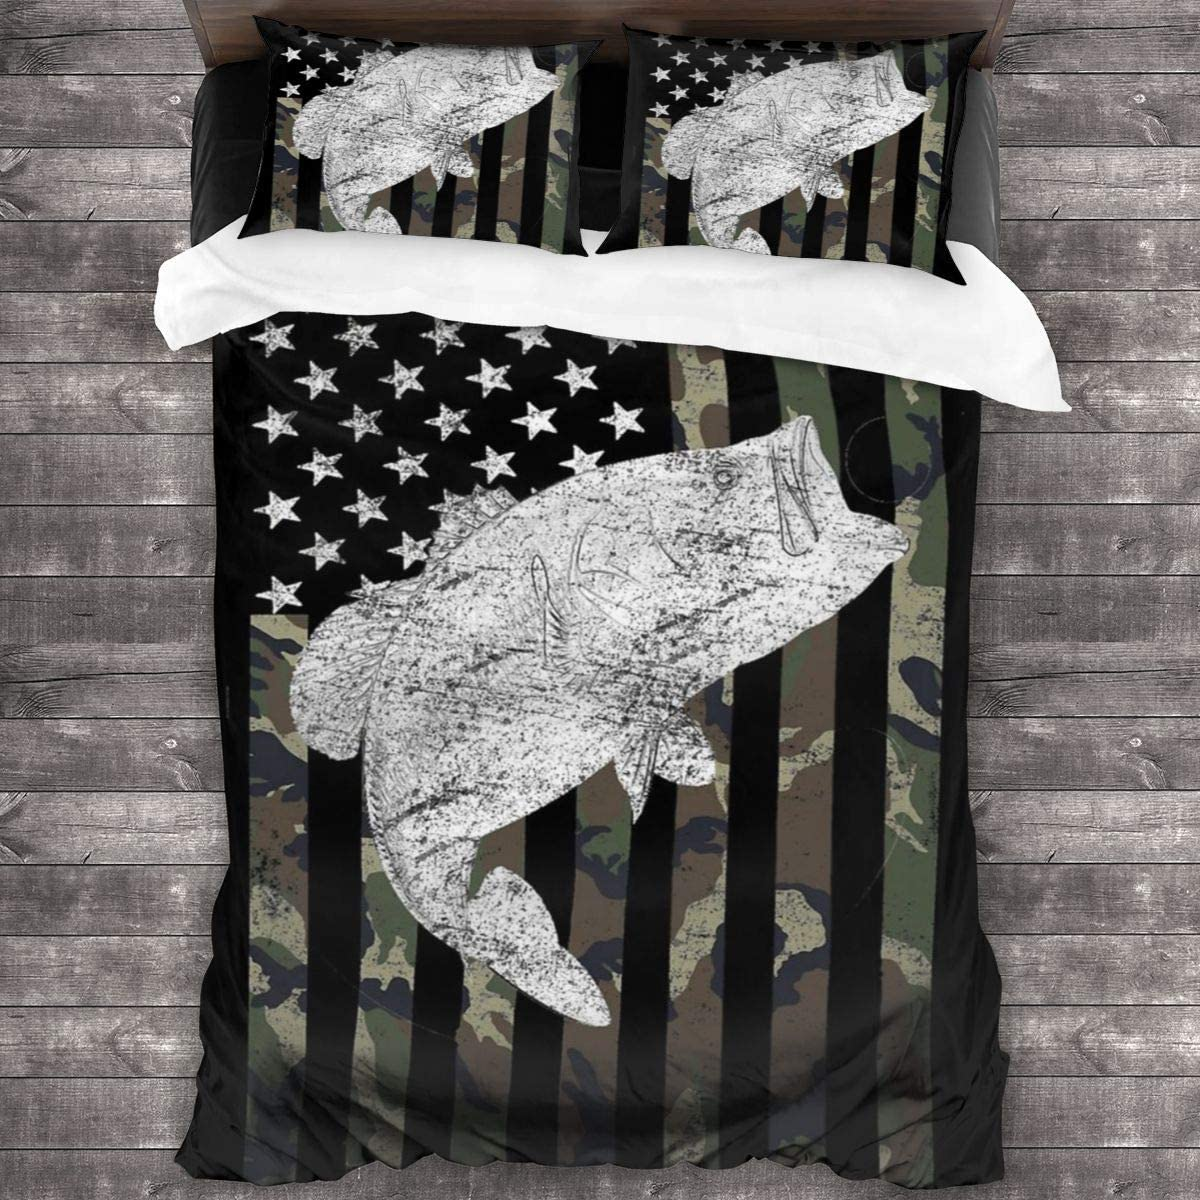 Green Camo Camouflage Flag Bass Fishing Angler Home Collection 3 Piece Quilted Reversible Coverlet Pillow Cover Bedding Set With Zipper Closure Comforter Sets For All Season 86 X 70 Inch